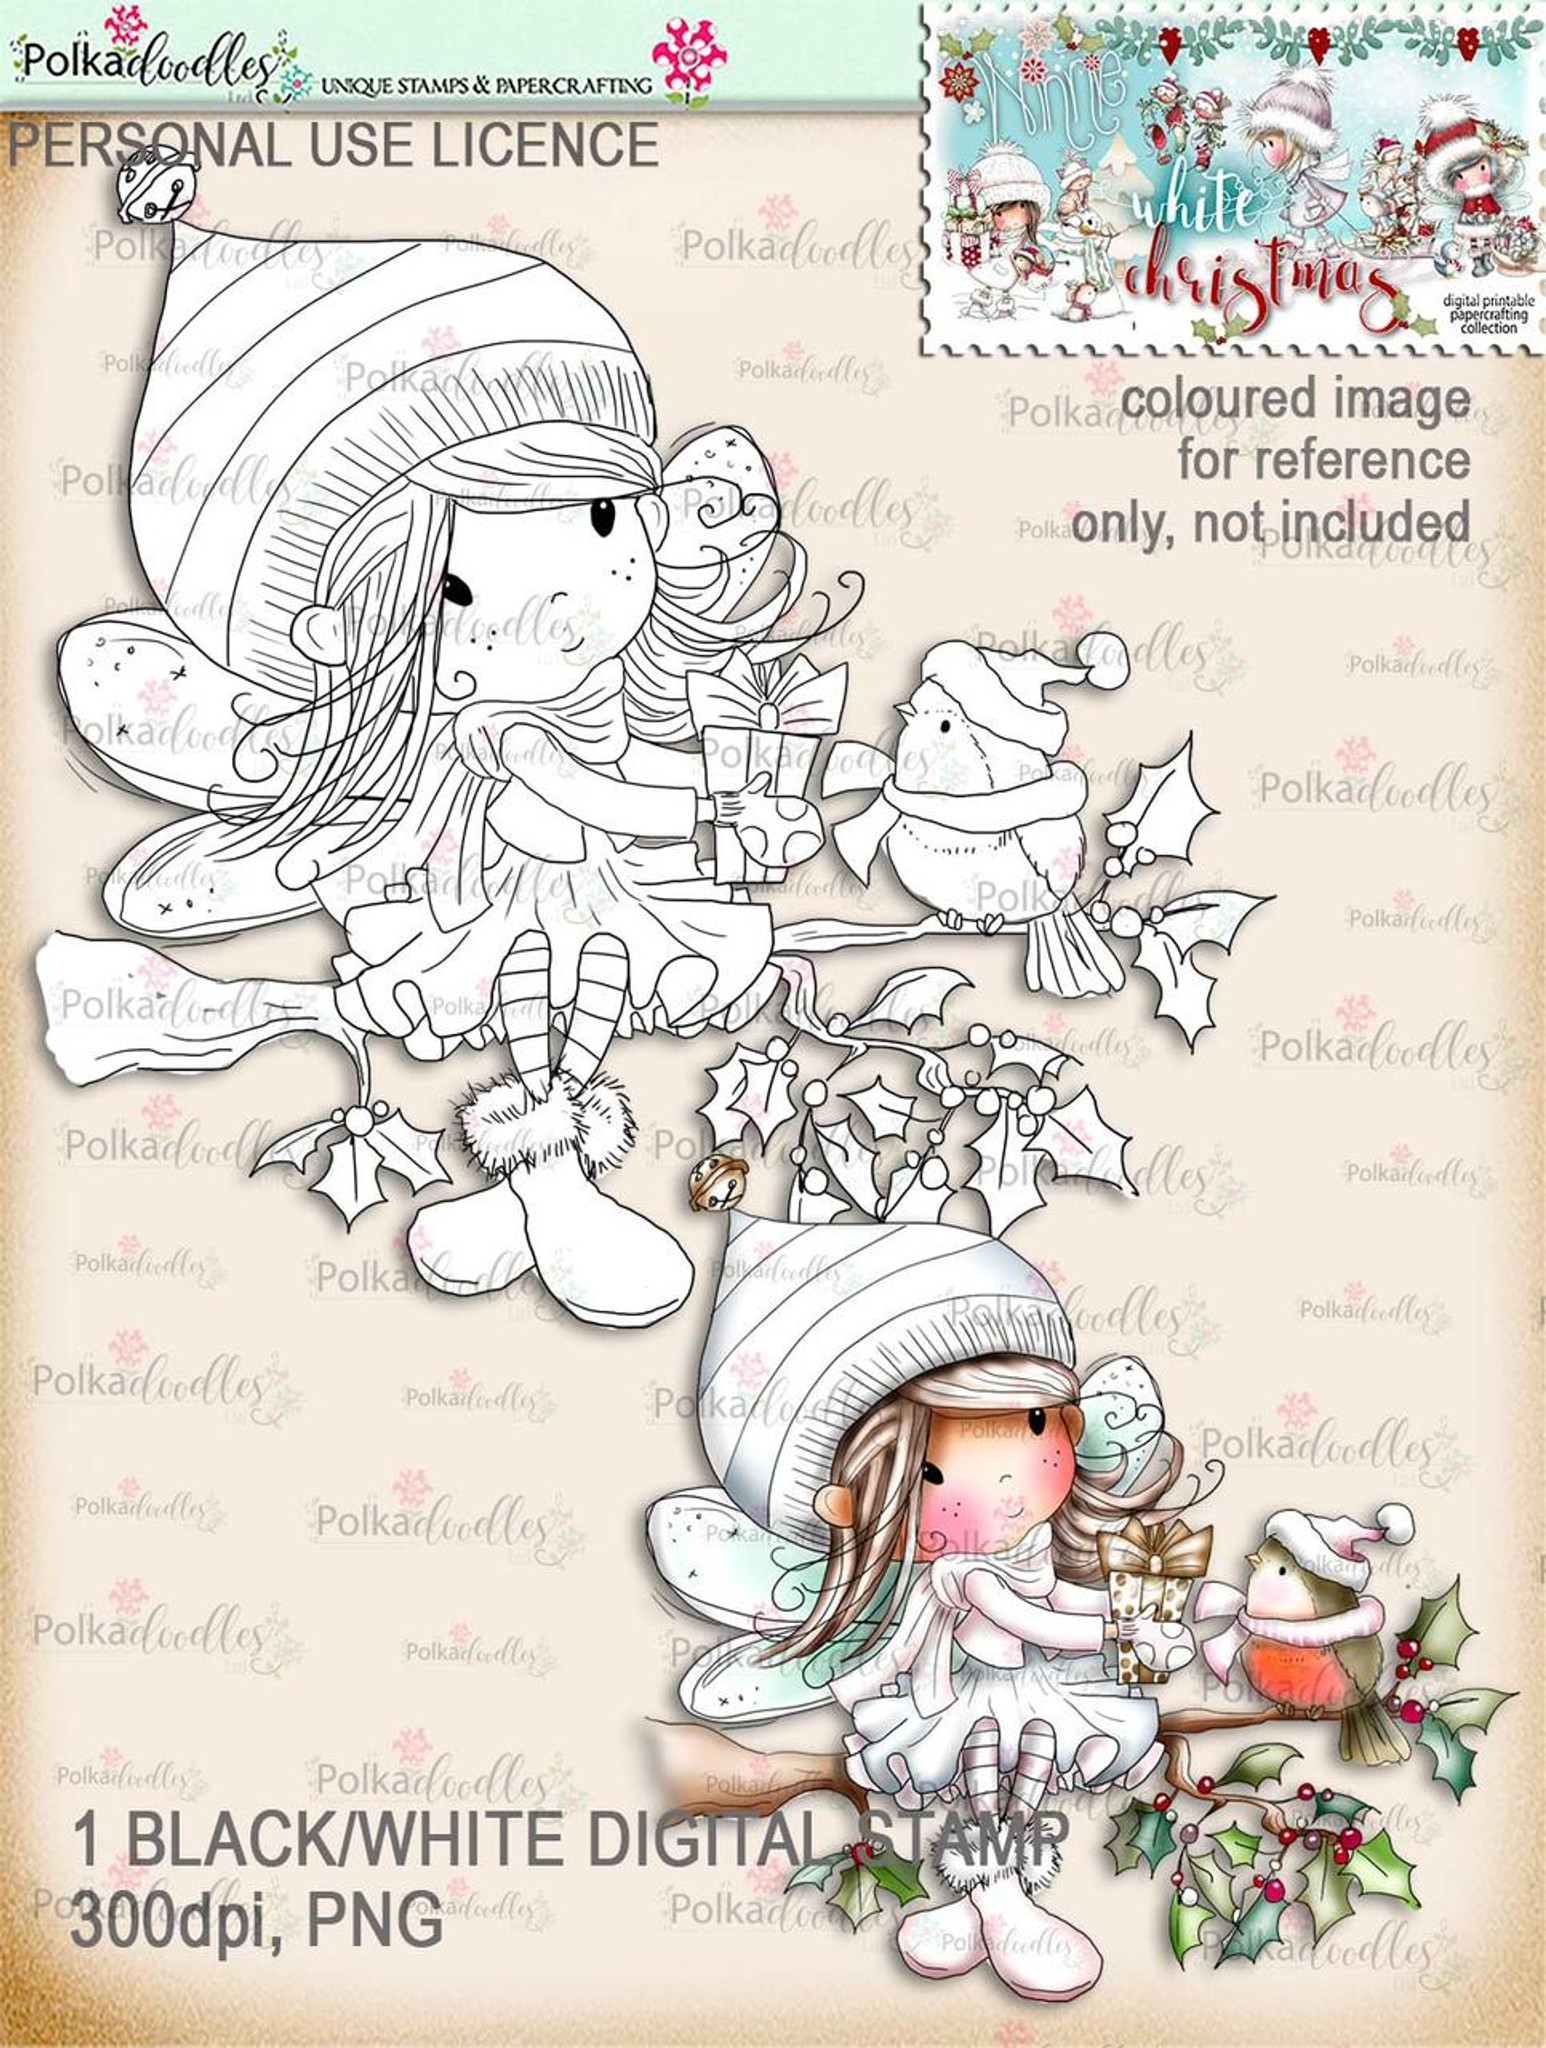 photograph regarding Gift Not Included Printable identify Robin Present department - Electronic Stamp down load - Winnie White Xmas printables